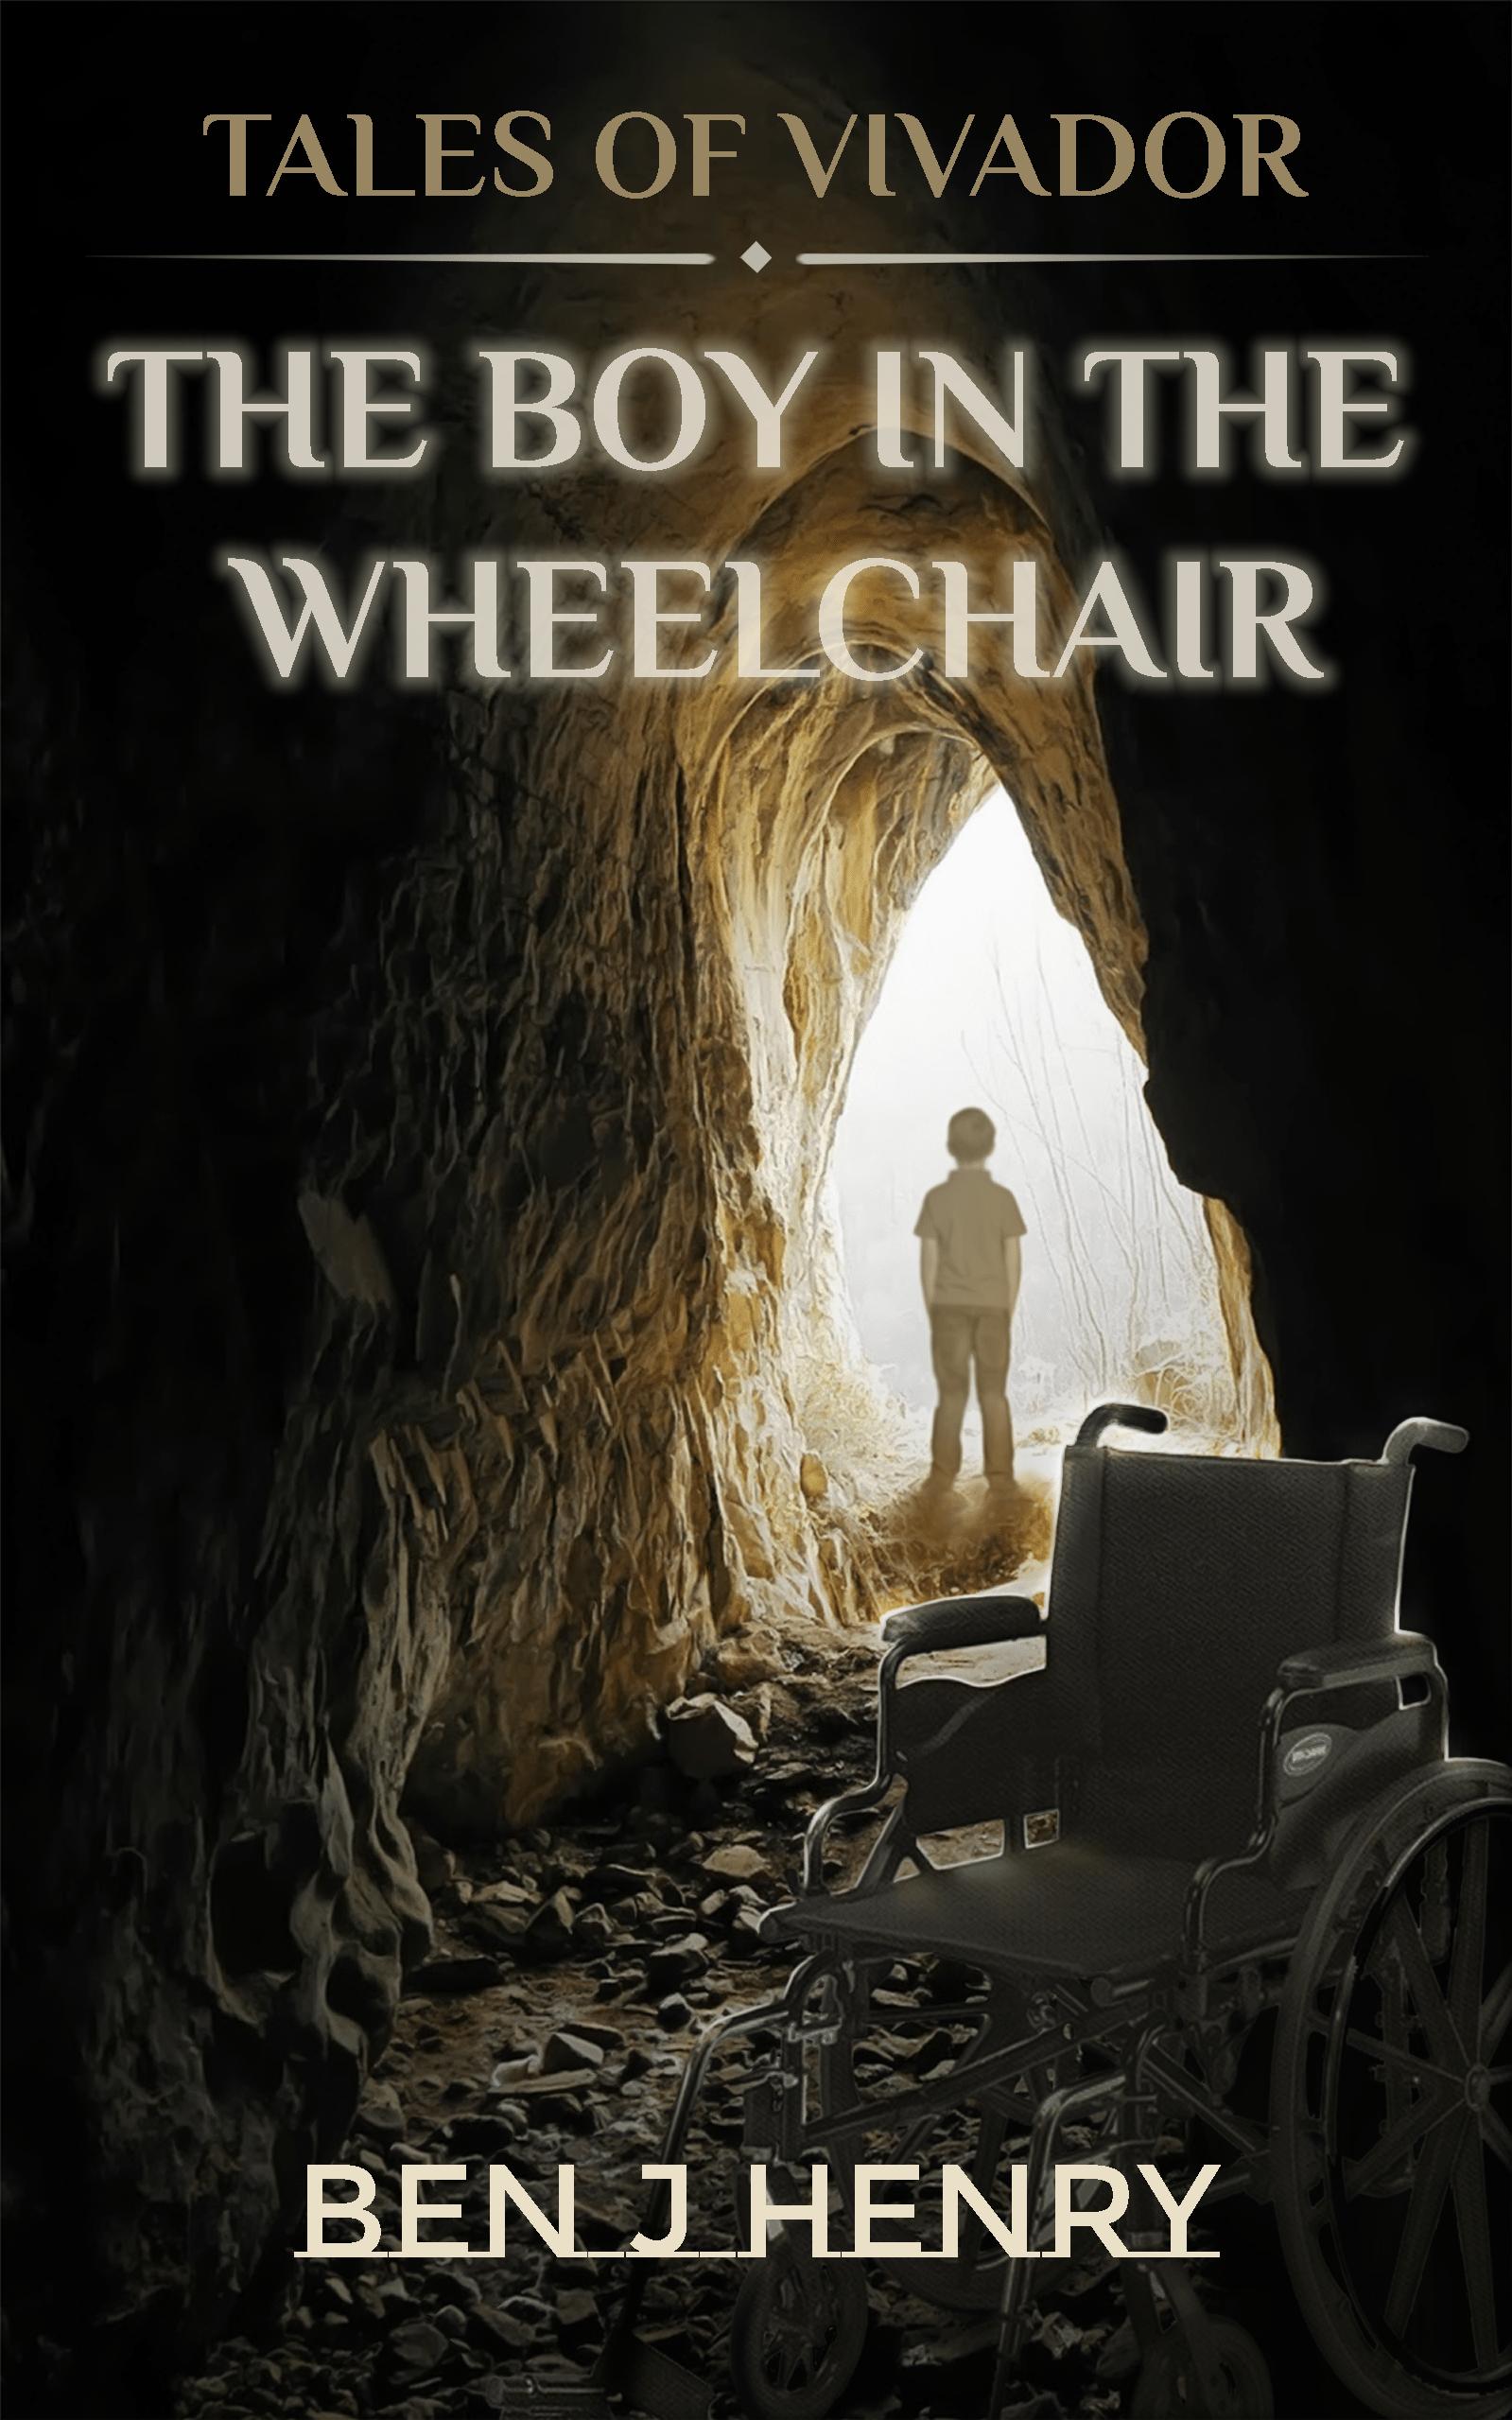 Boy-in-wheelchair-cover.png